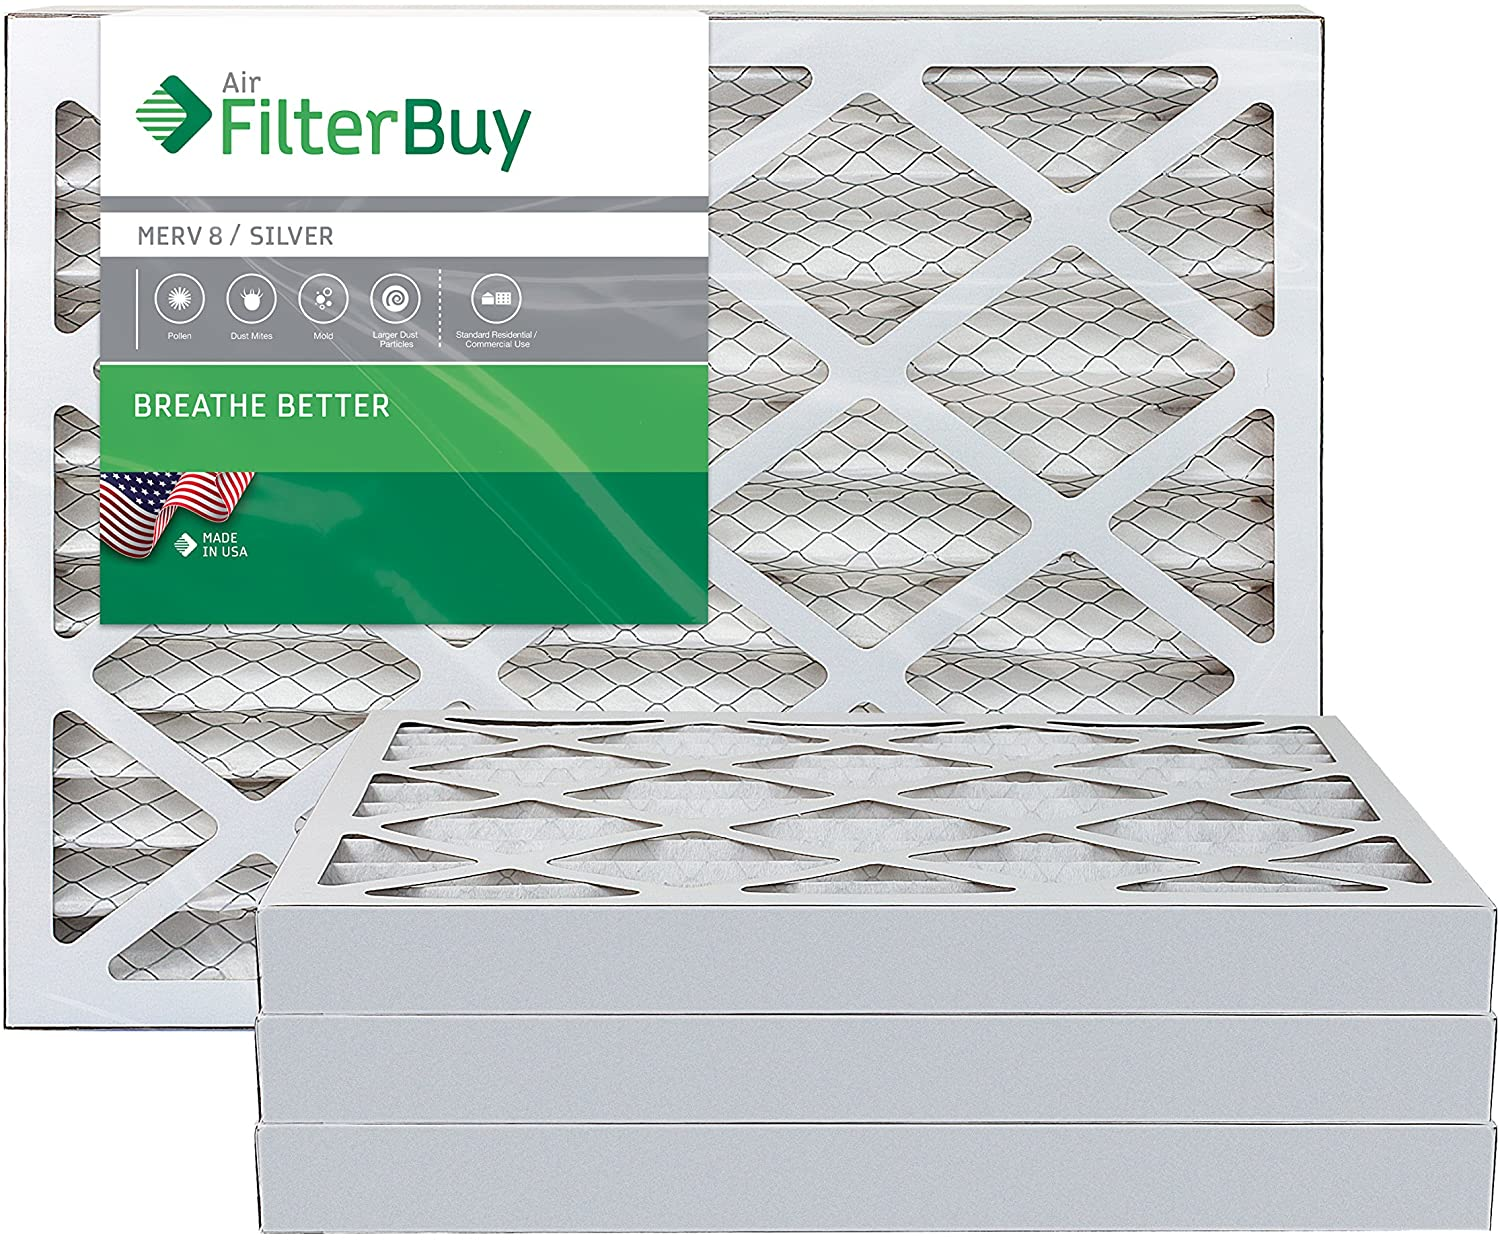 FilterBuy 12x25x2 MERV 8 Pleated AC Furnace Air Filter, (Pack of 4 Filters), 12x25x2 – Silver